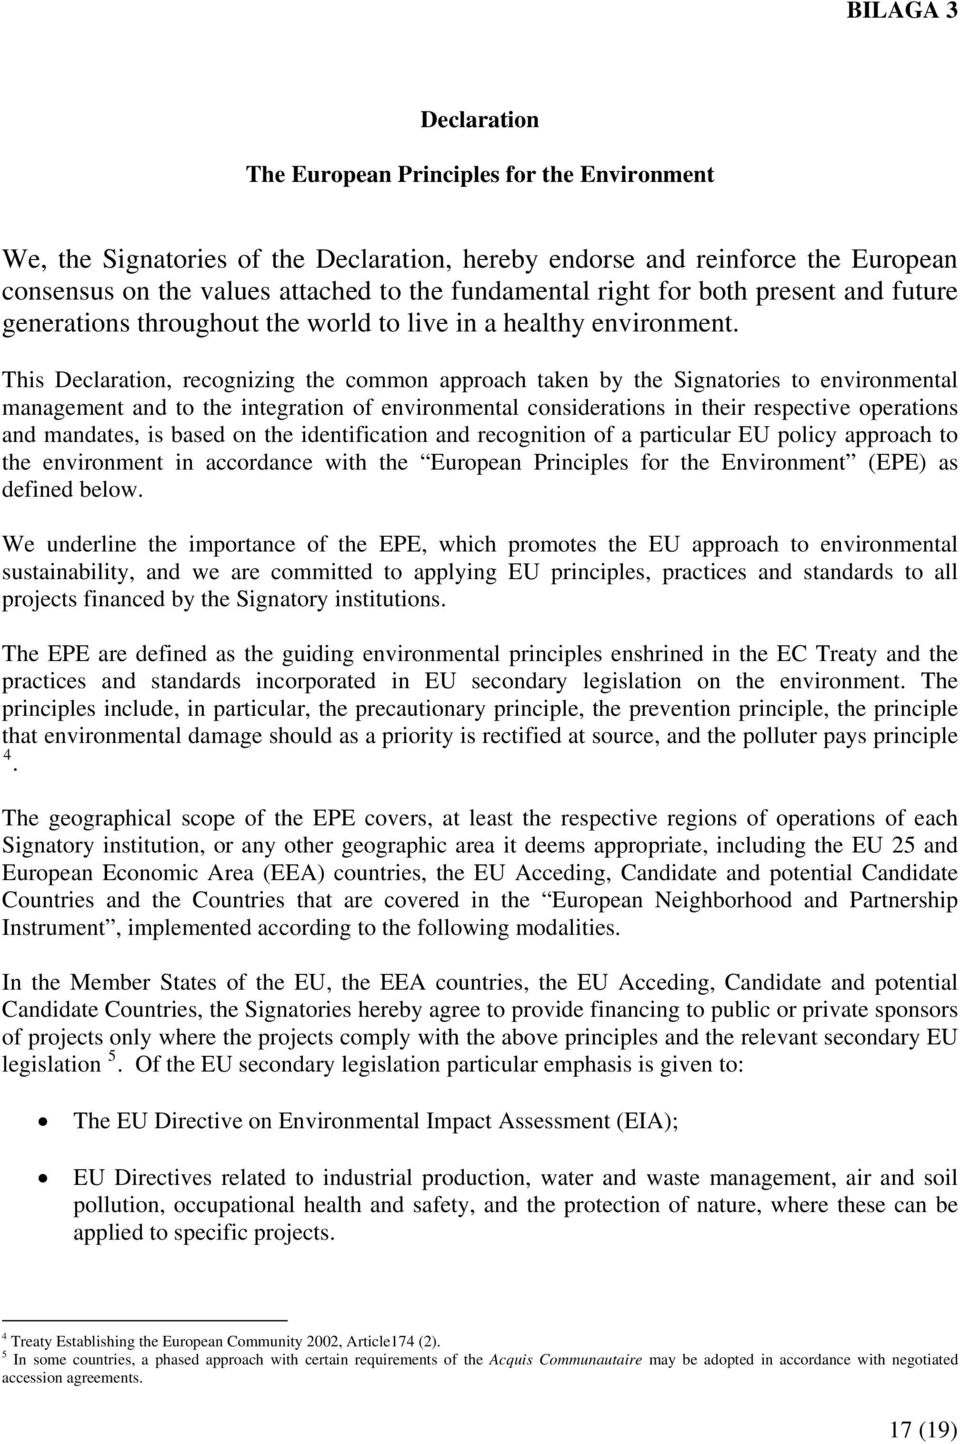 This Declaration, recognizing the common approach taken by the Signatories to environmental management and to the integration of environmental considerations in their respective operations and